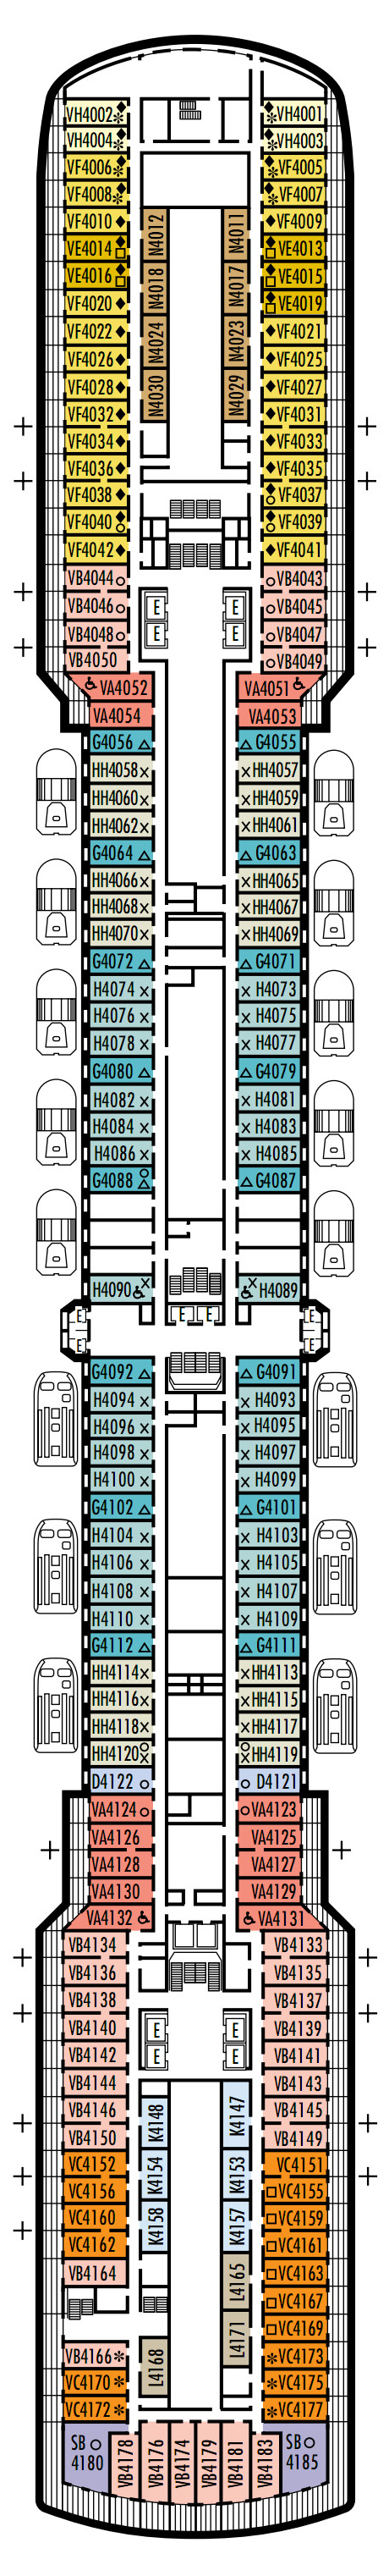 Westerdam Deck 4 - Upper Promenade layout